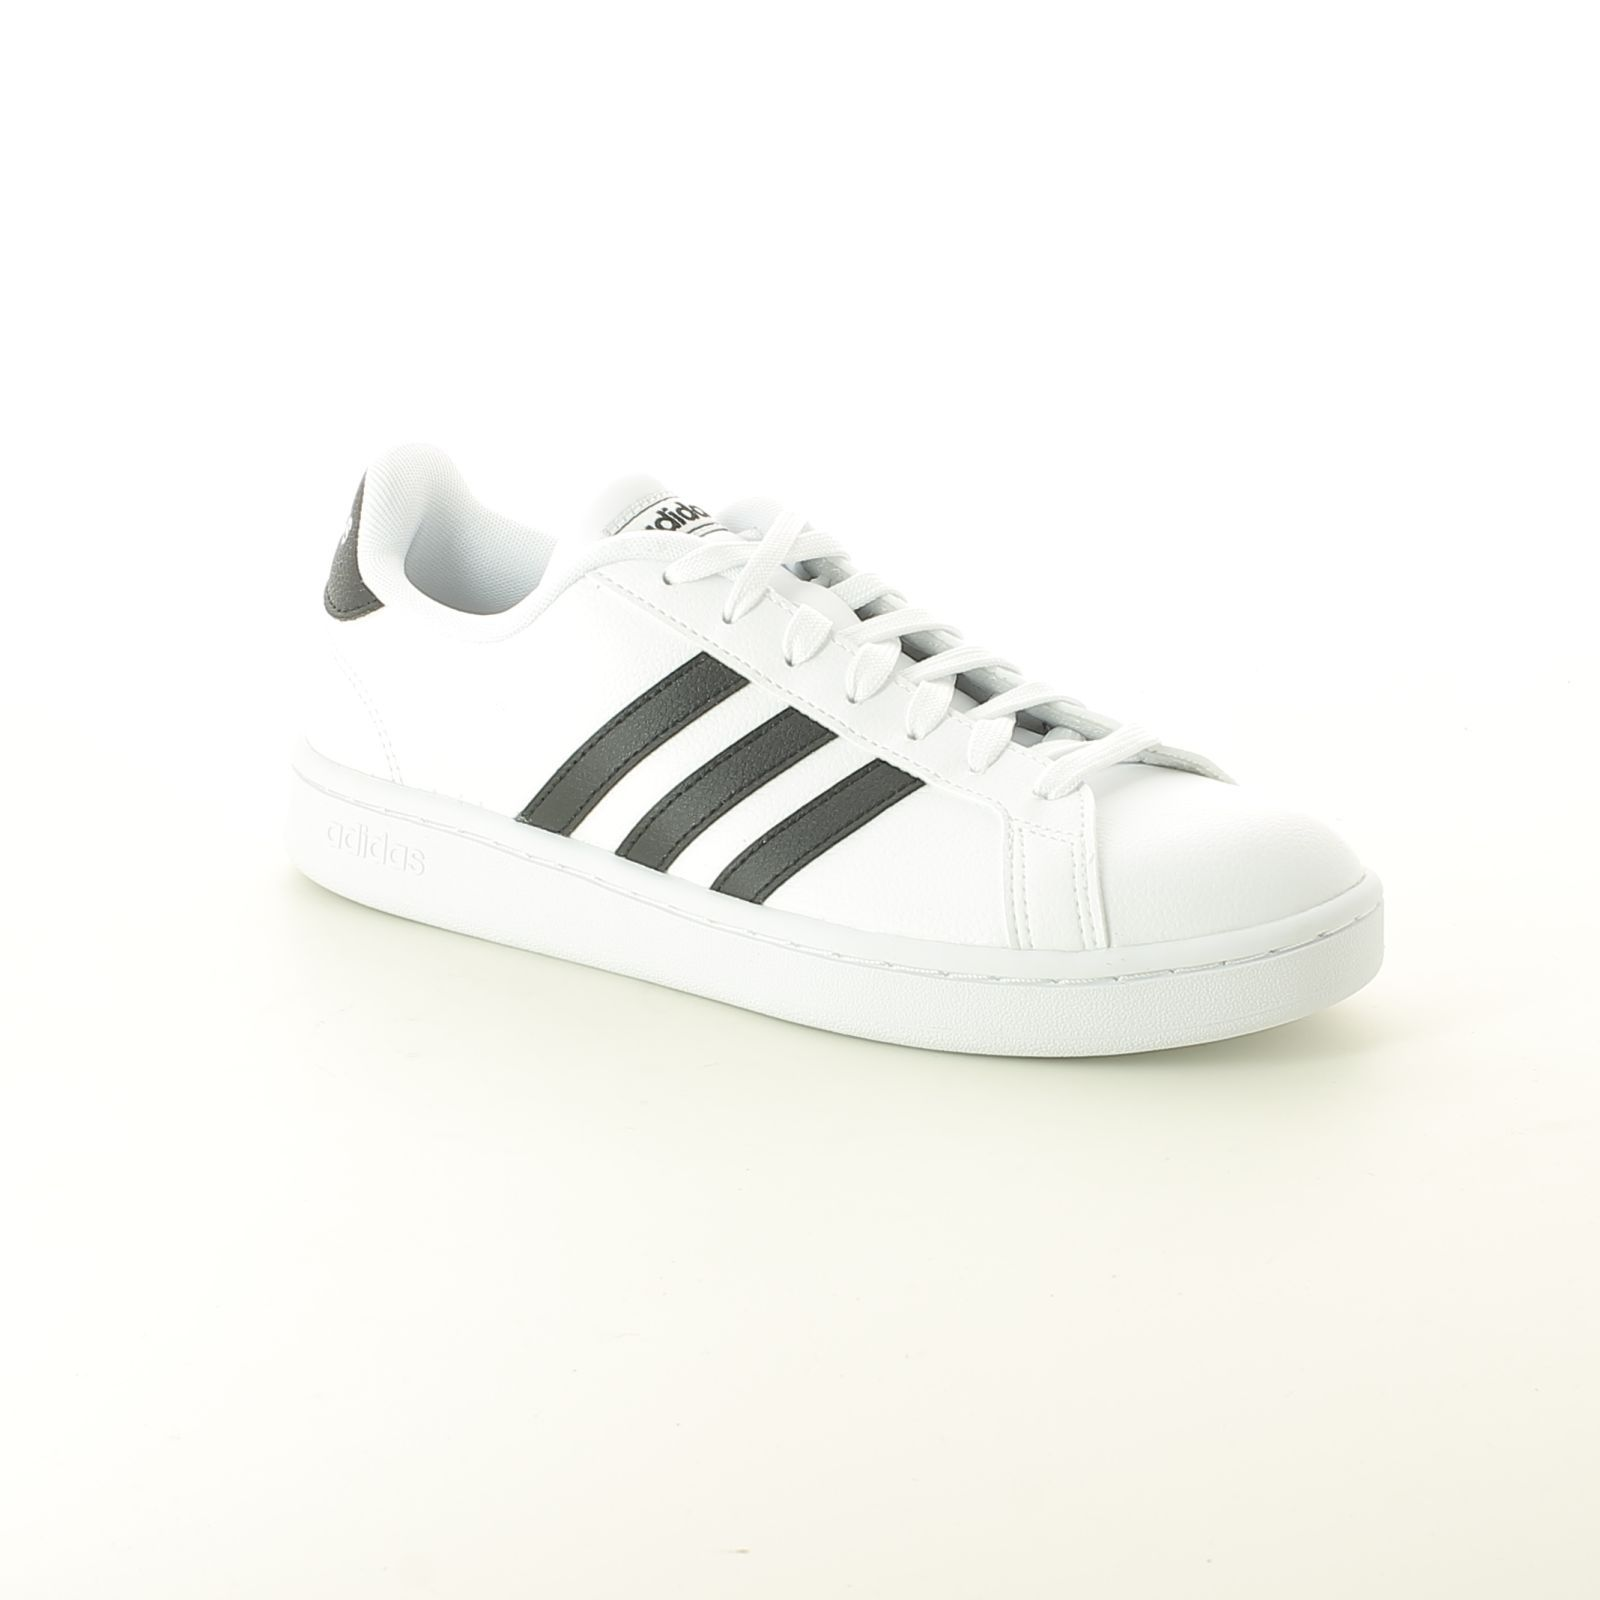 ADIDAS Sneaker Wit heren (2.28.3.2.5 - GRAND COURT) - West-End